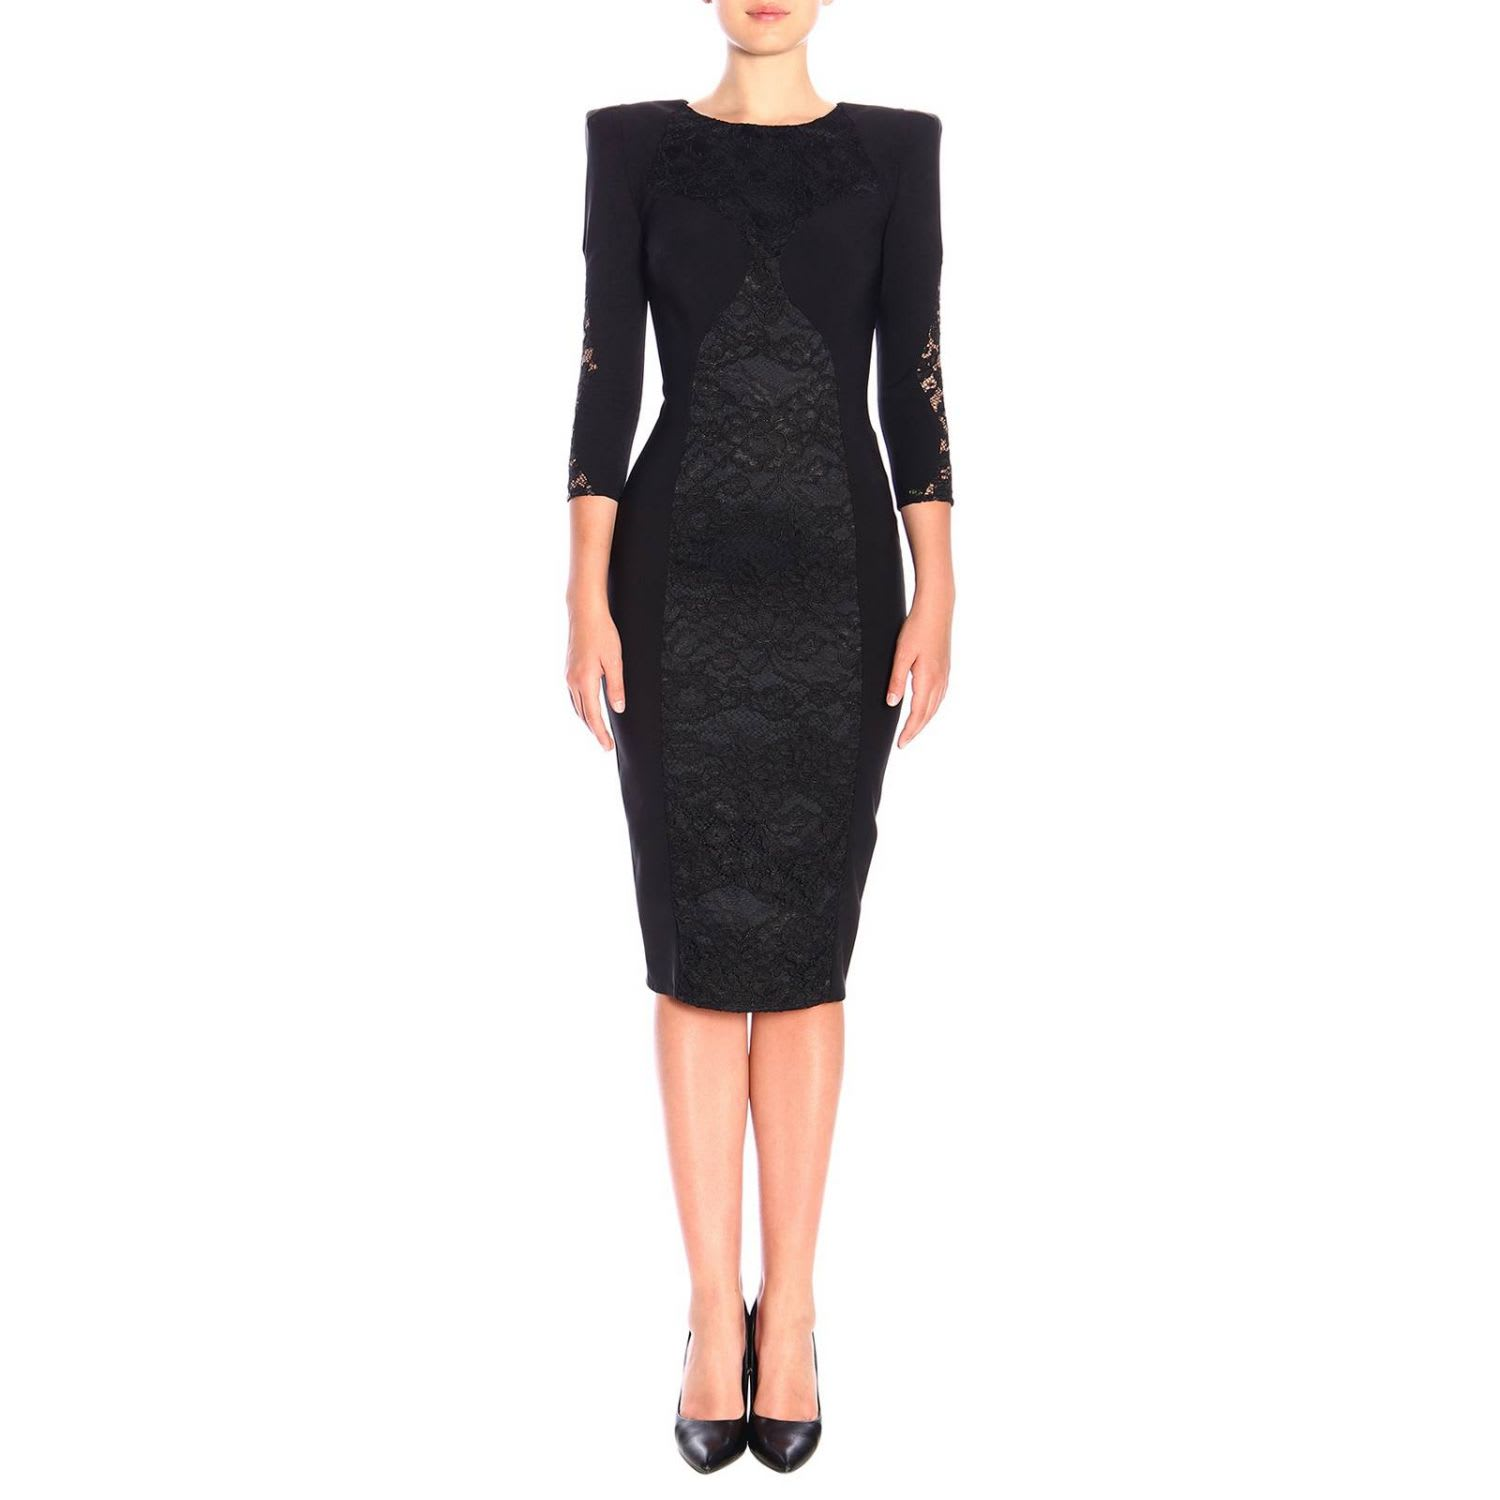 Elisabetta Franchi Dress Elisabetta Franchi Bielastic Dress With Lace Details